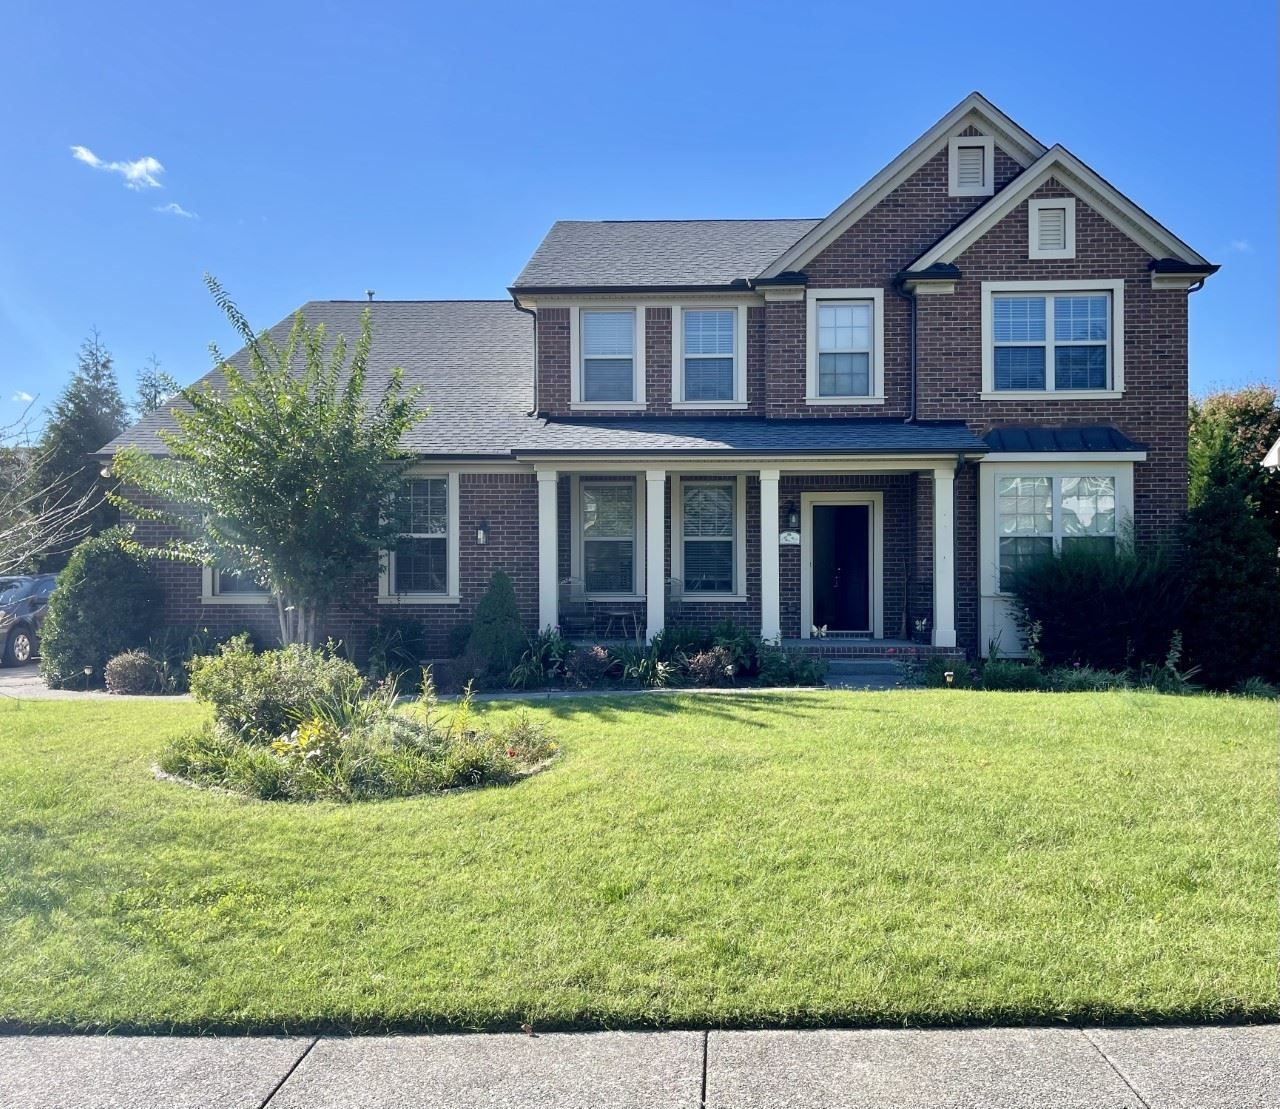 1029 Cantwell Pl, Spring Hill, TN 37174 - MLS#: 2301016